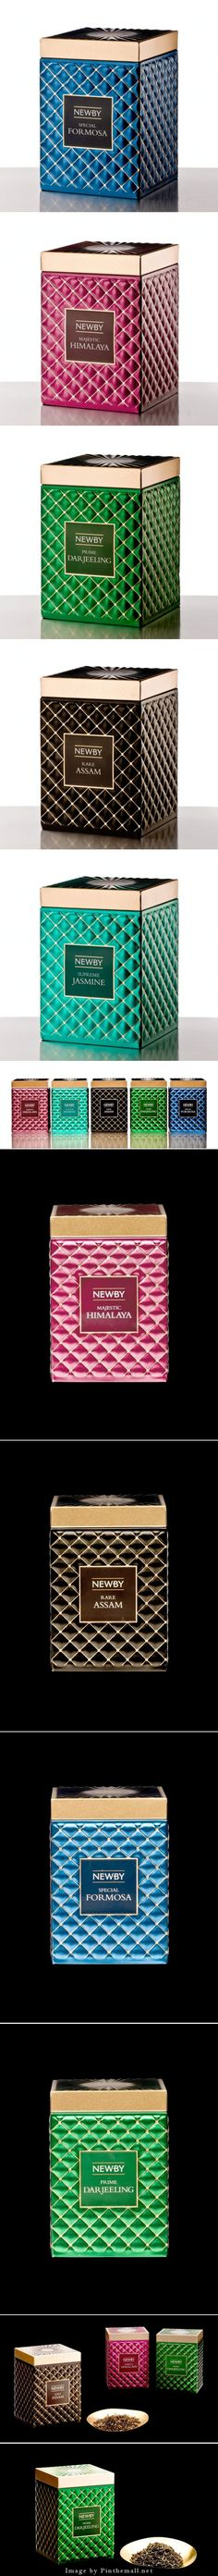 Newby Teas' Gourmet Collection #packaging - http://www.packagingoftheworld.com/2014/11/newby-teas-gourmet-collection.html